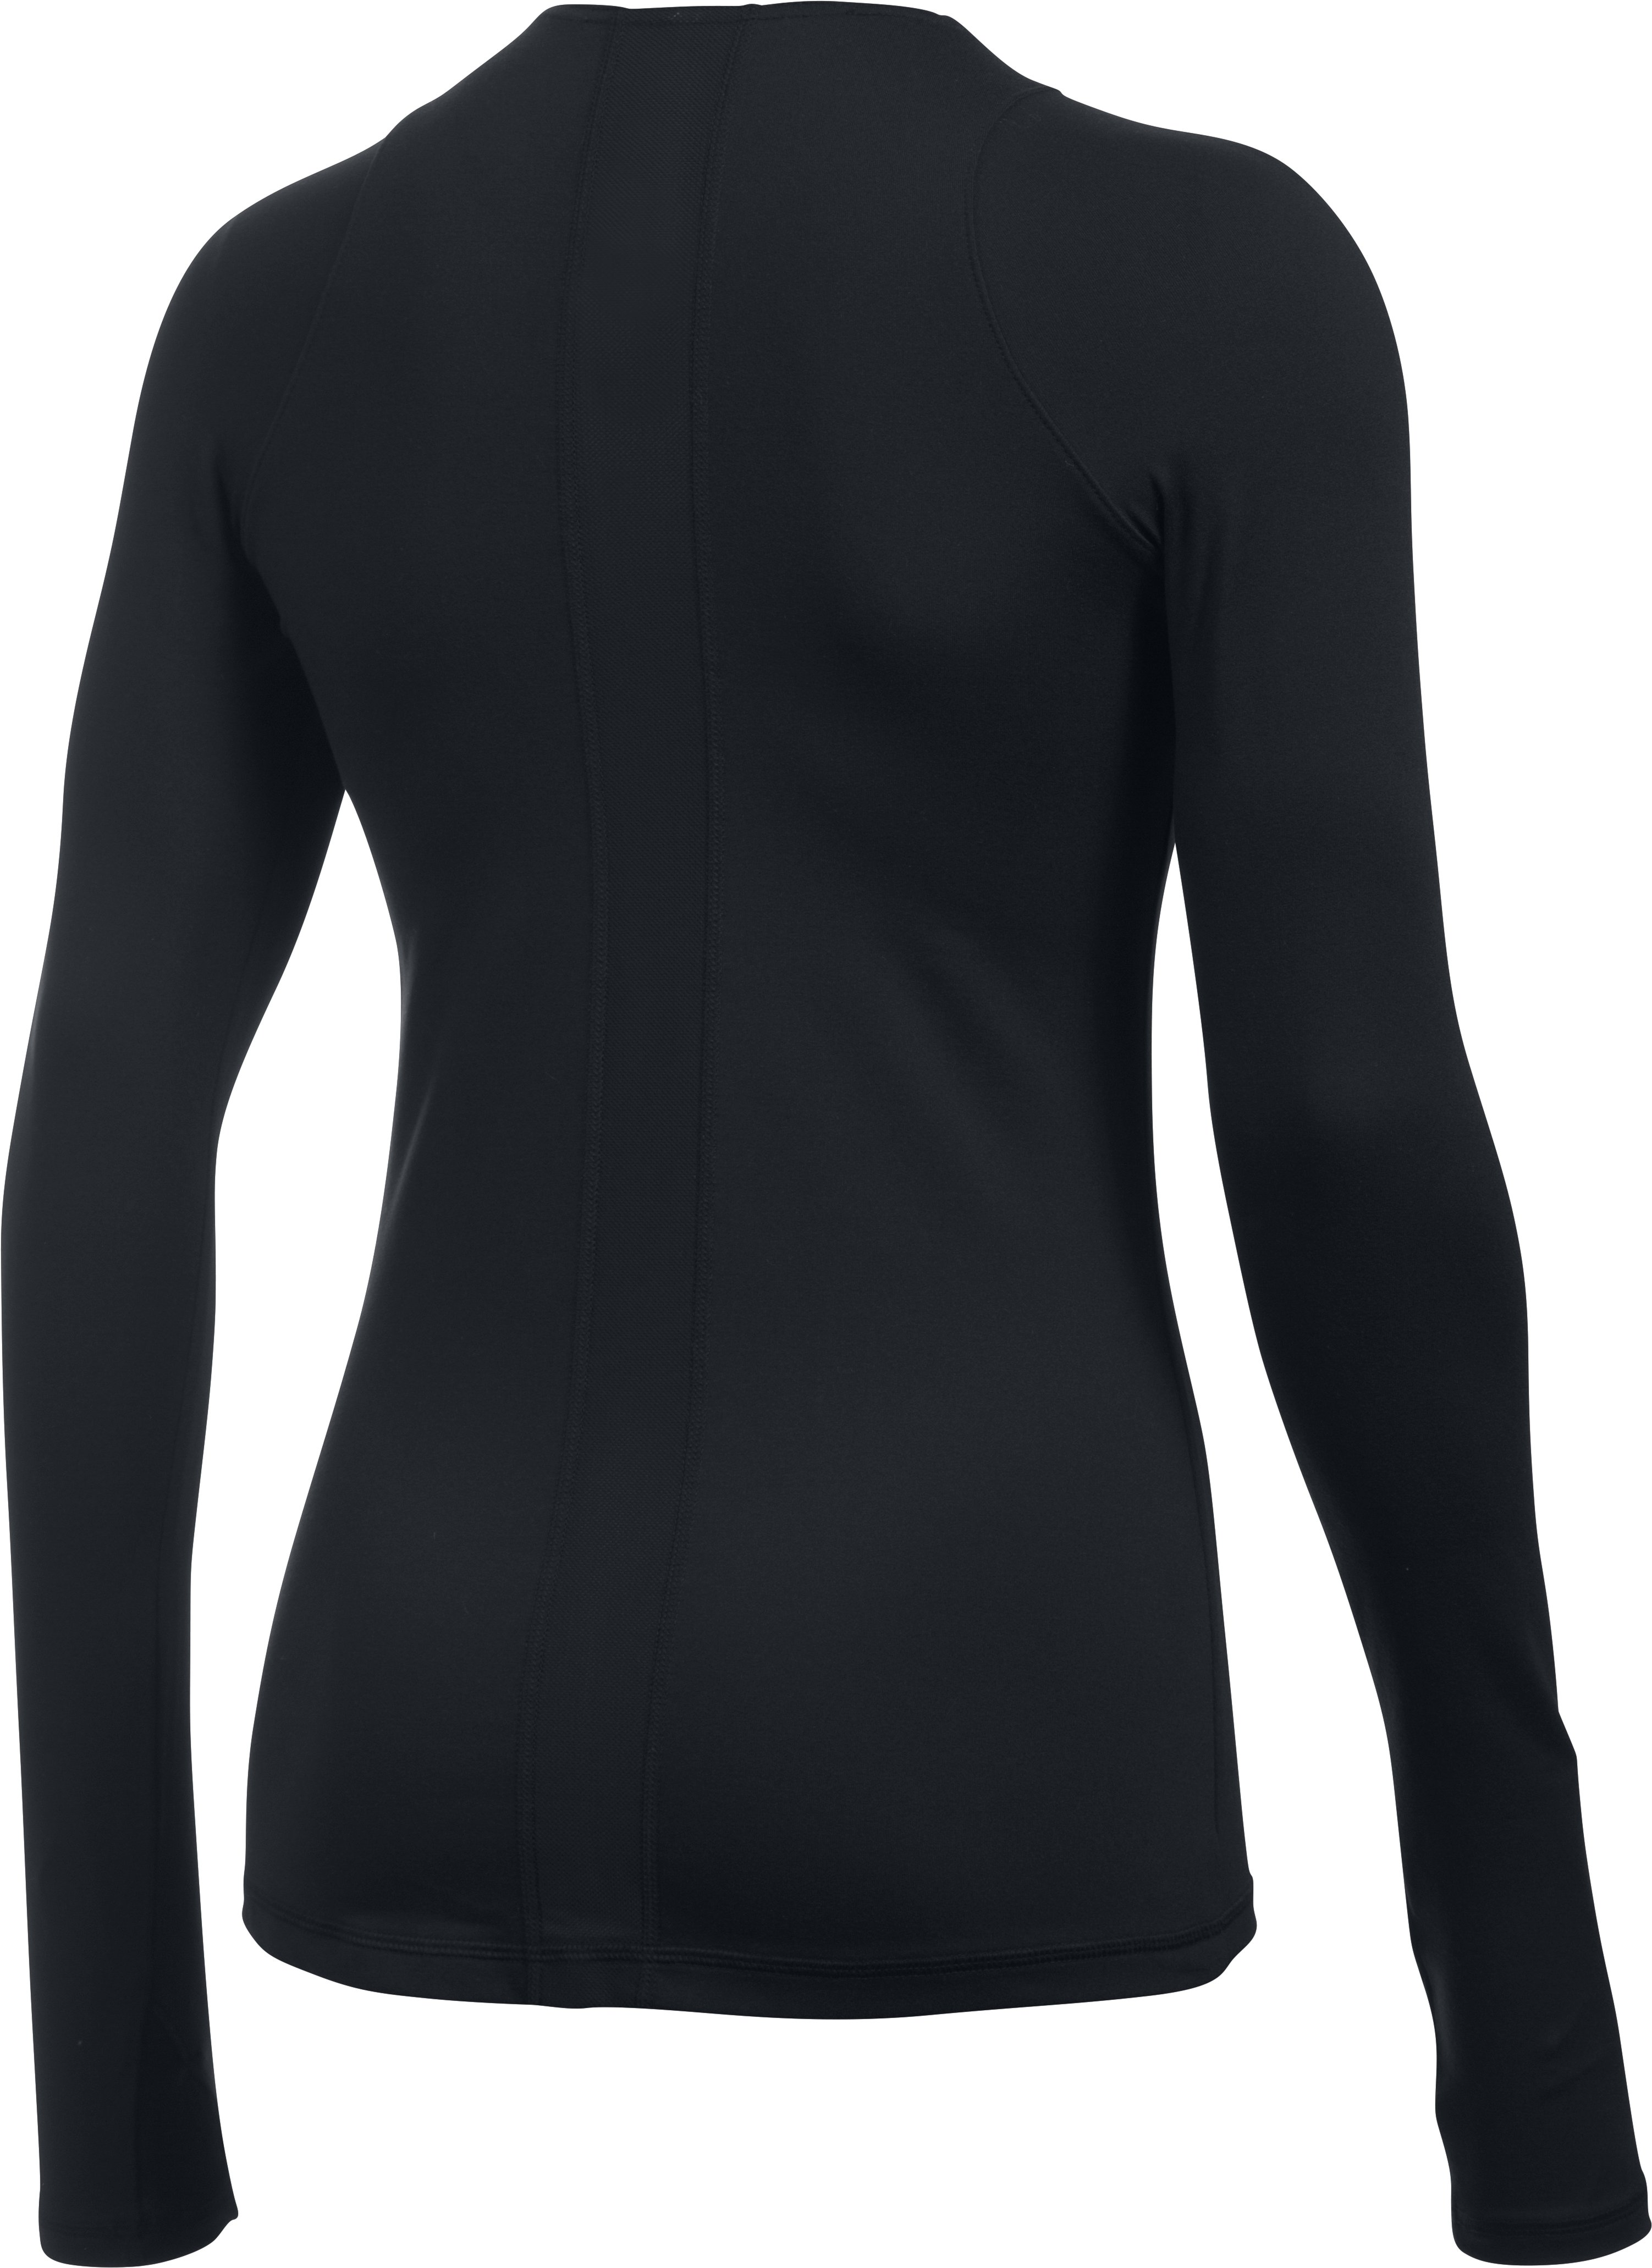 Women's UA Mirror Top, Black , undefined